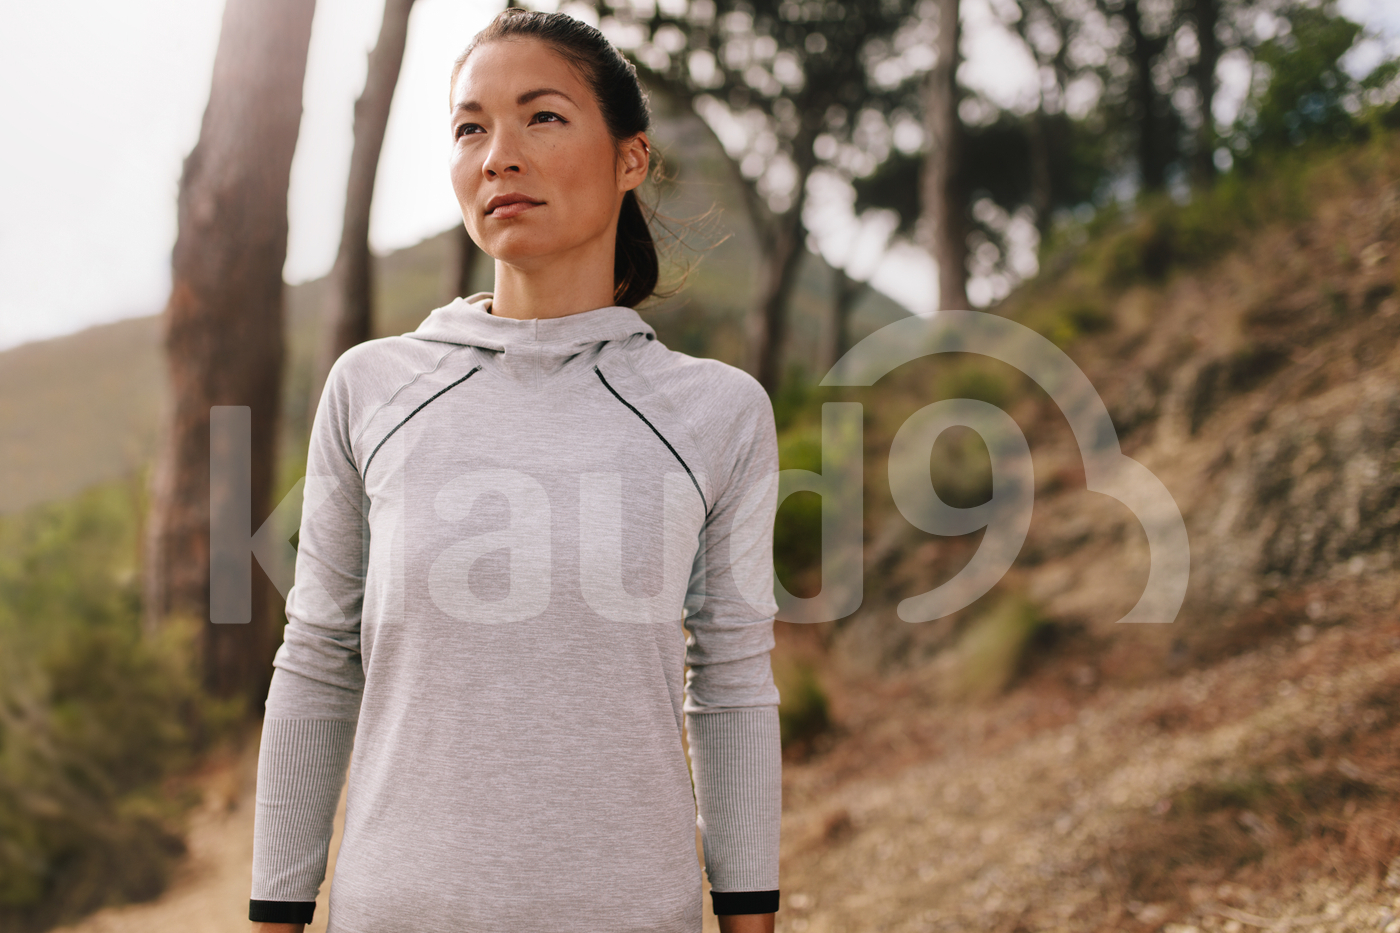 Fit woman runner outdoors on country road